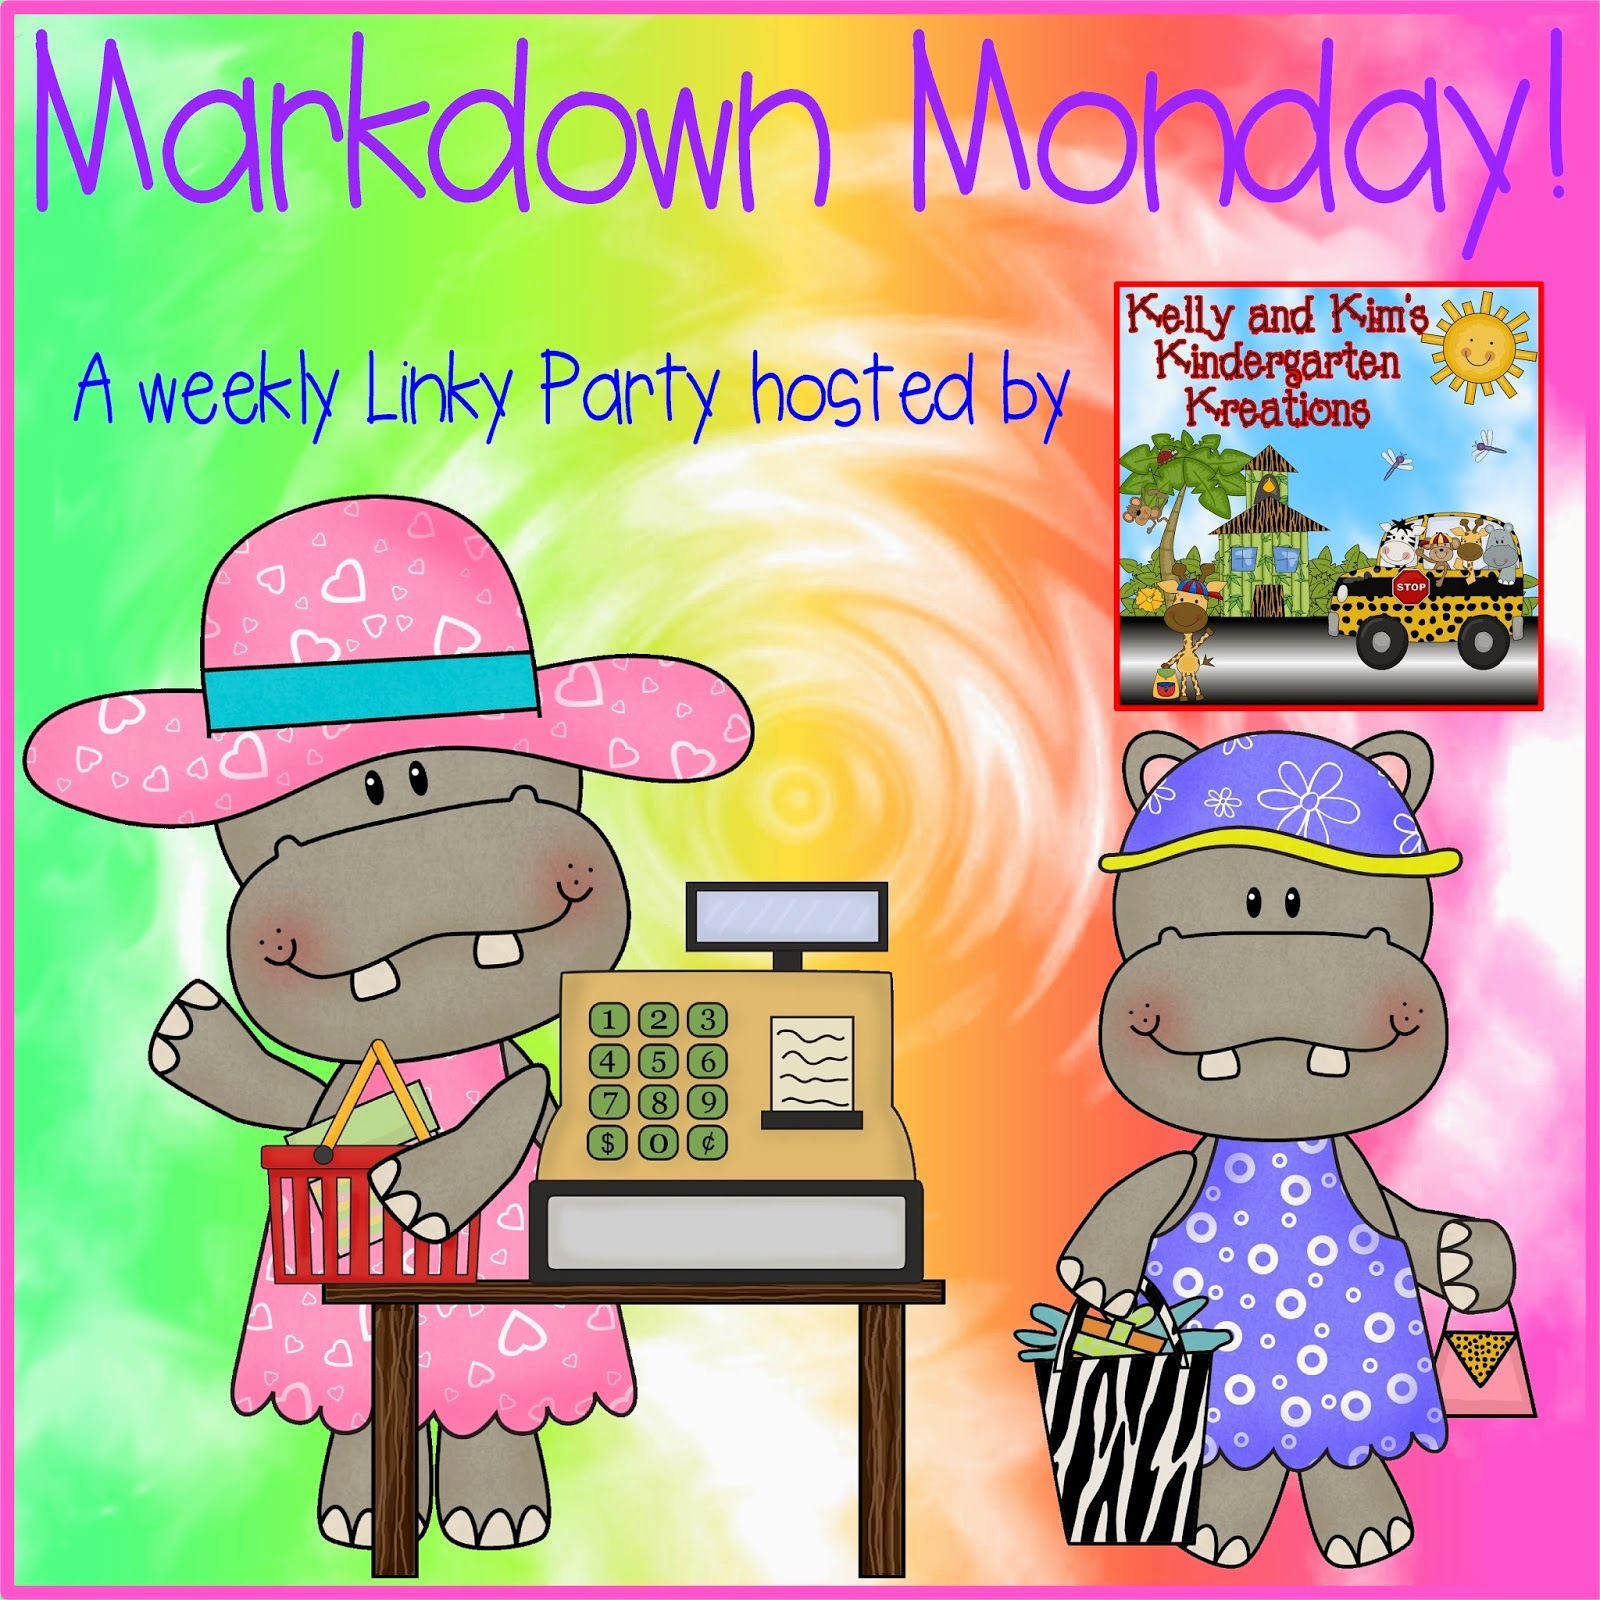 http://kellyandkimskindergarten.blogspot.com/2014/07/markdown-monday-linky-party-july-14th.html